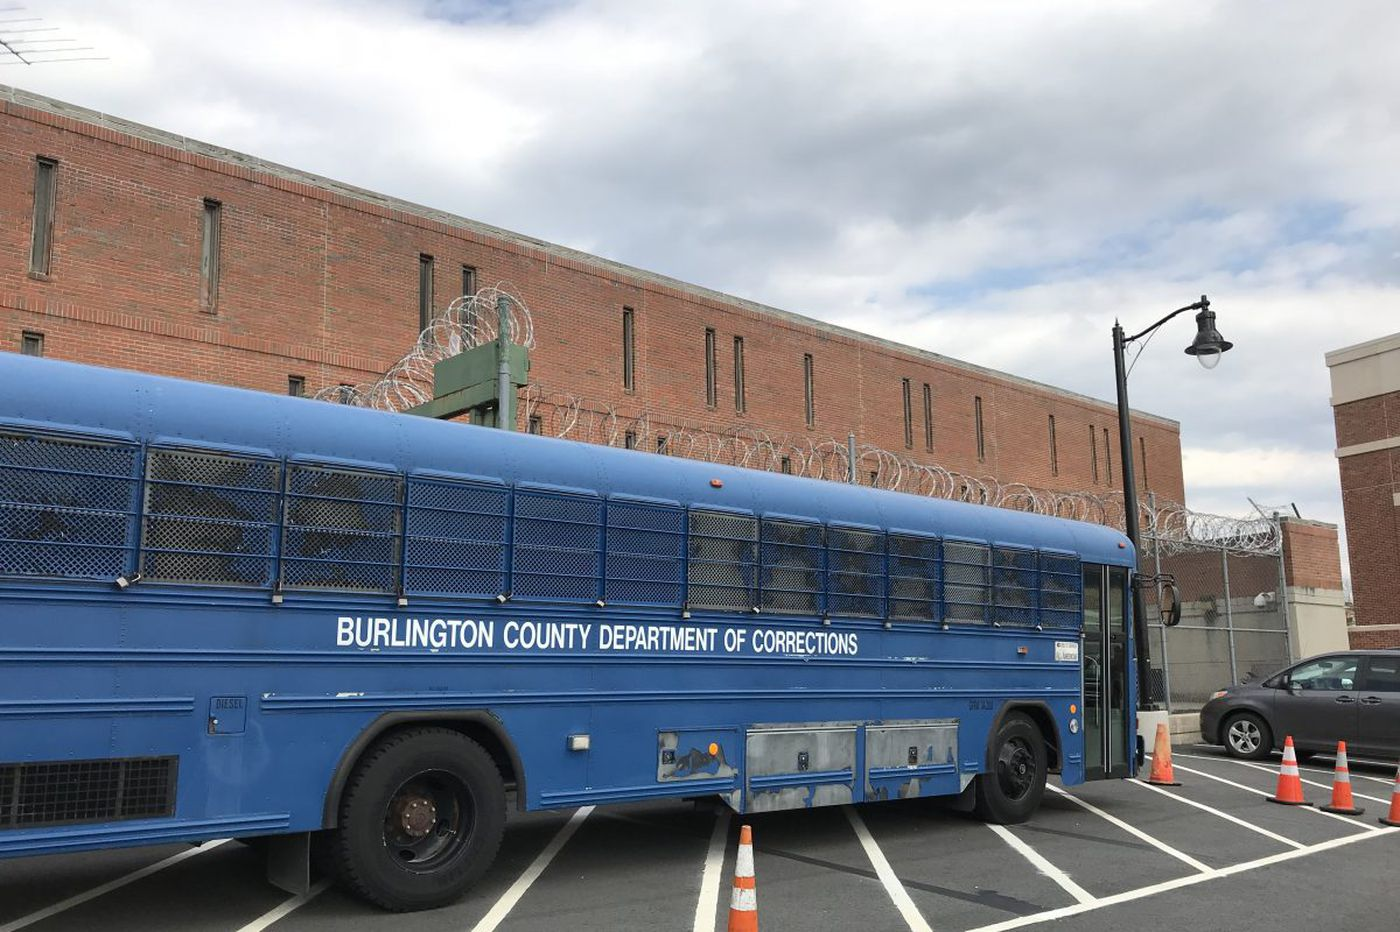 Some 14,000 inmates were illegally strip-searched in Burlington County. Their court case settles for $2.4 million